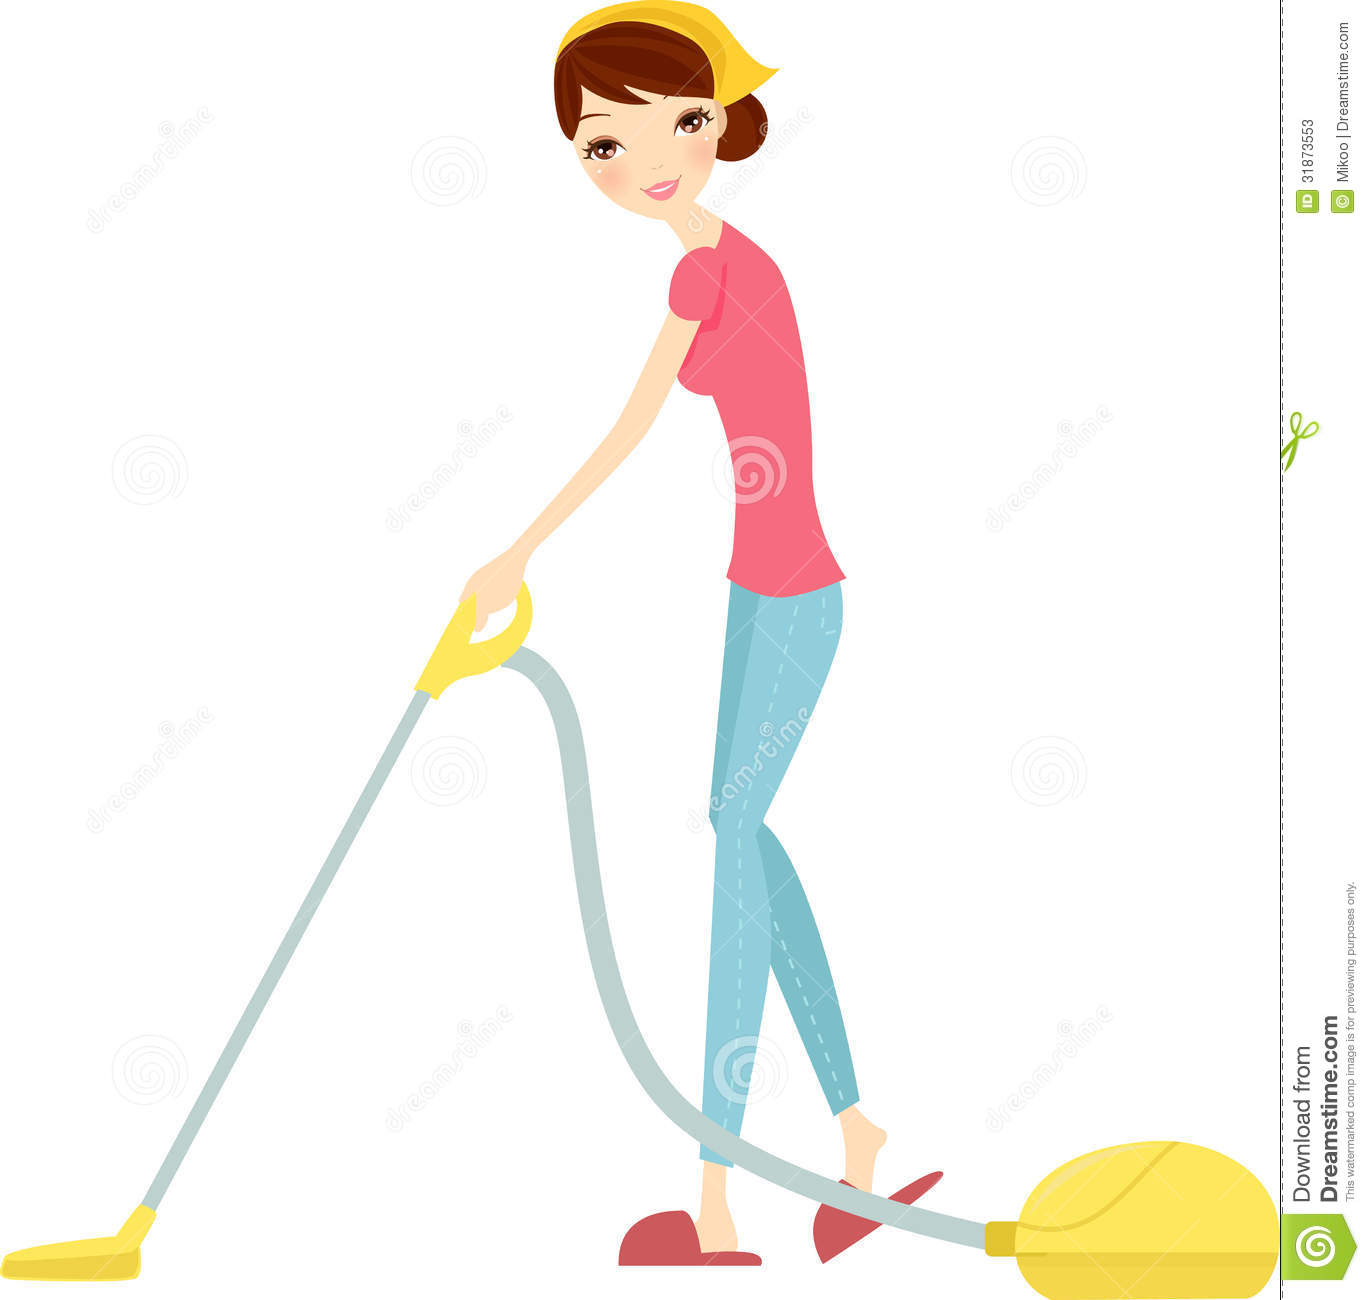 Vacuum cleaner clipart vacuum cleaner clip art - Cleaner Illustration Vacuum White Art